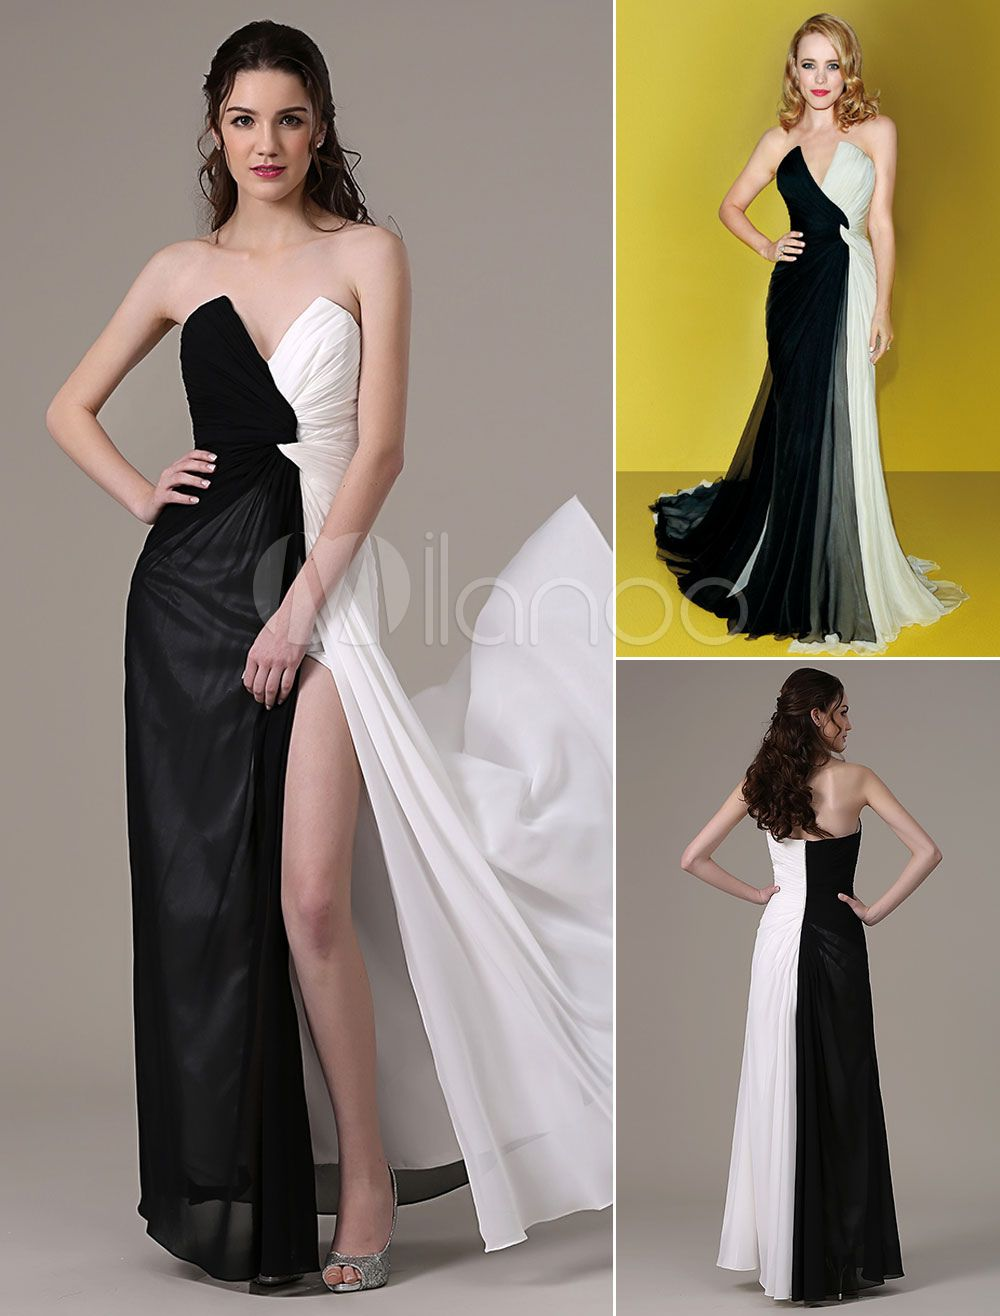 Pin auf OPM - BLACK WEDDING DRESS